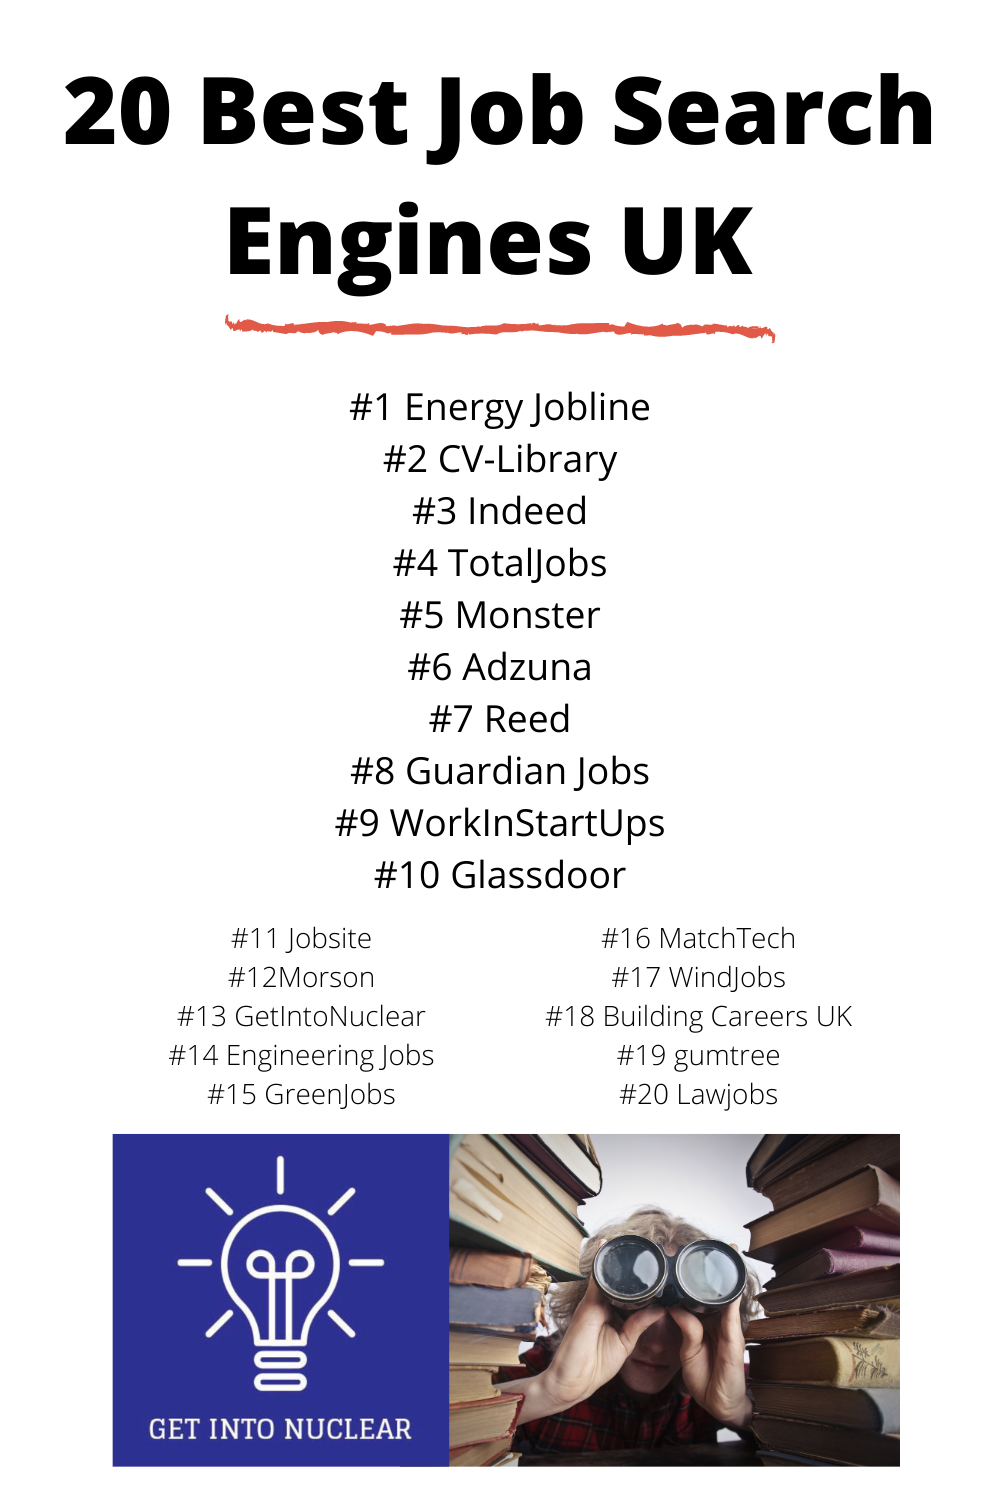 Best Job Search Engines UK